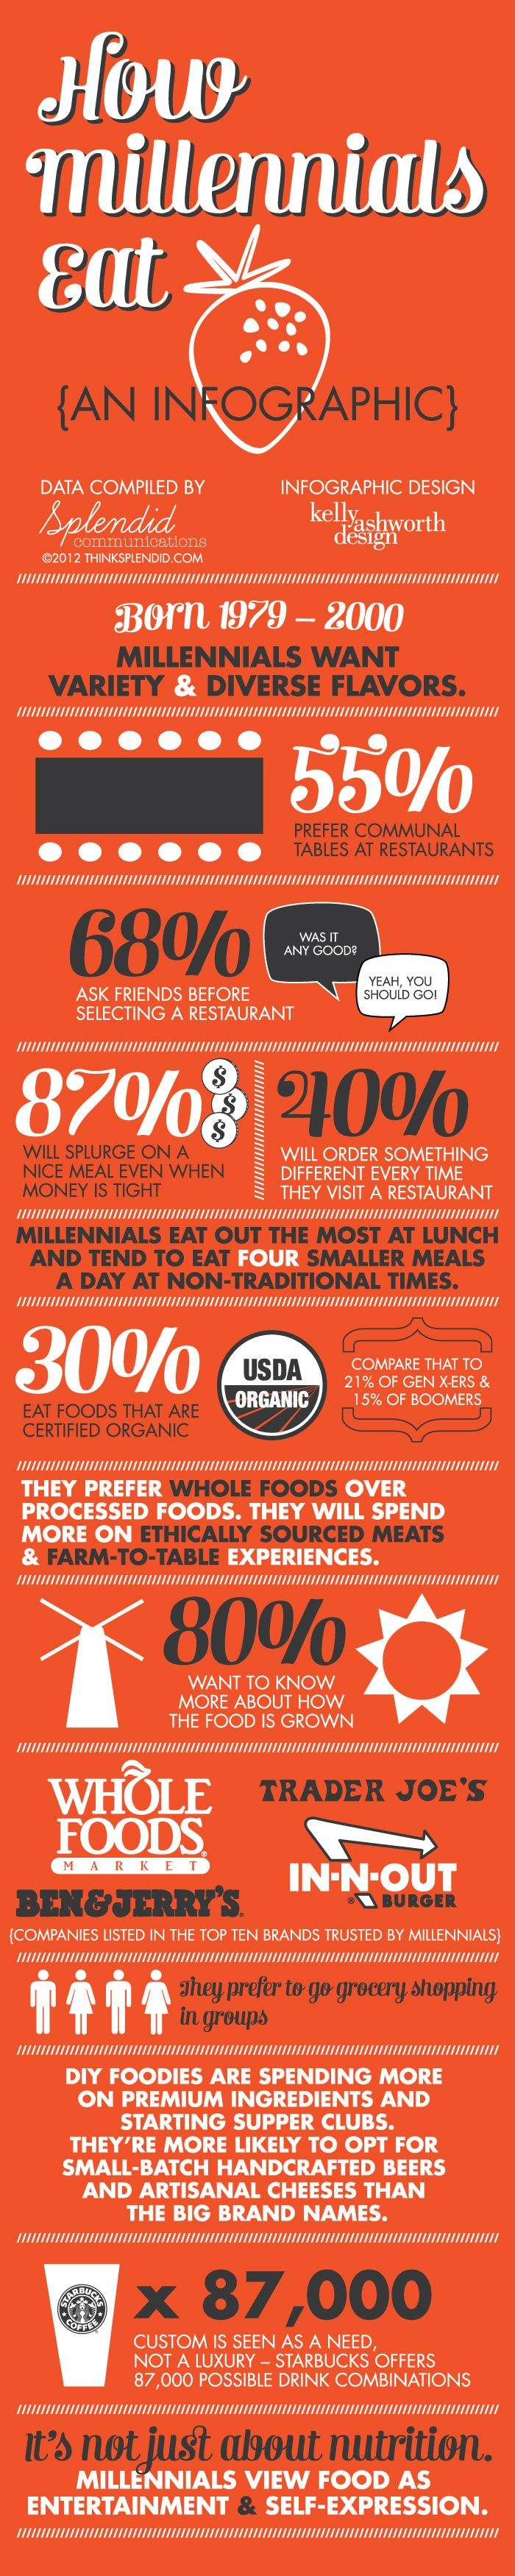 Restaurant Industry Statistics on Gen Y